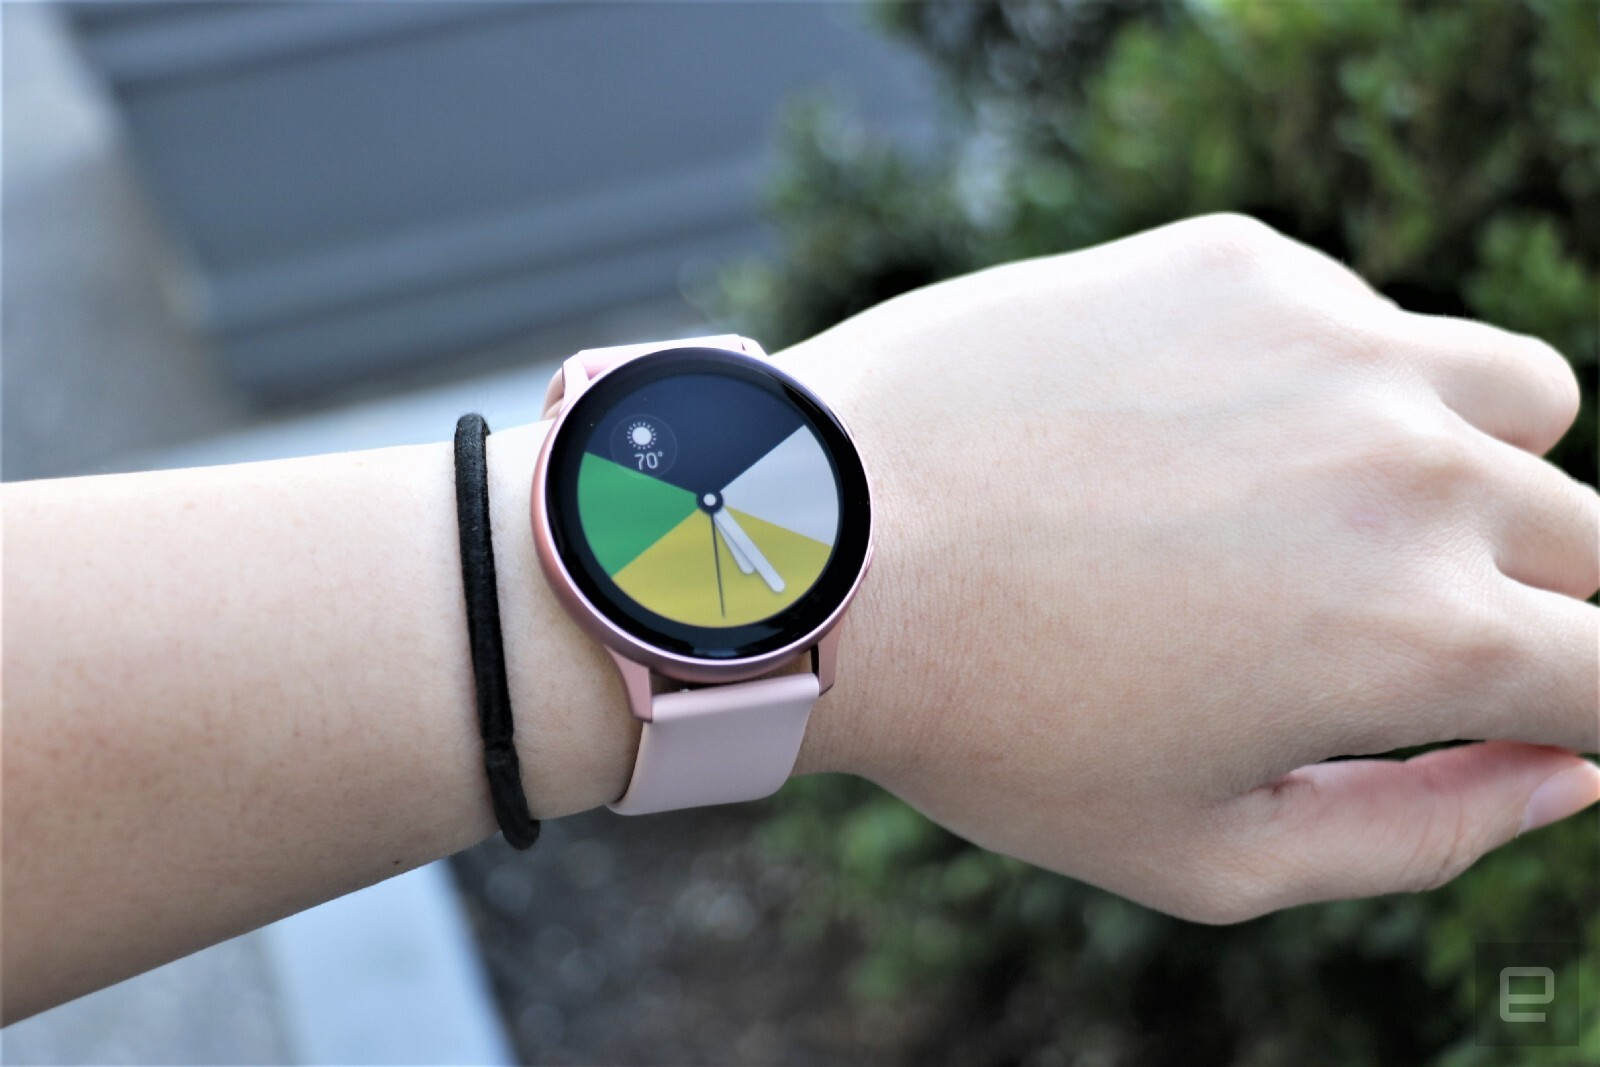 Samsung Galaxy Watch Active 2 review: powerful mid-range smartwatch - VnReview